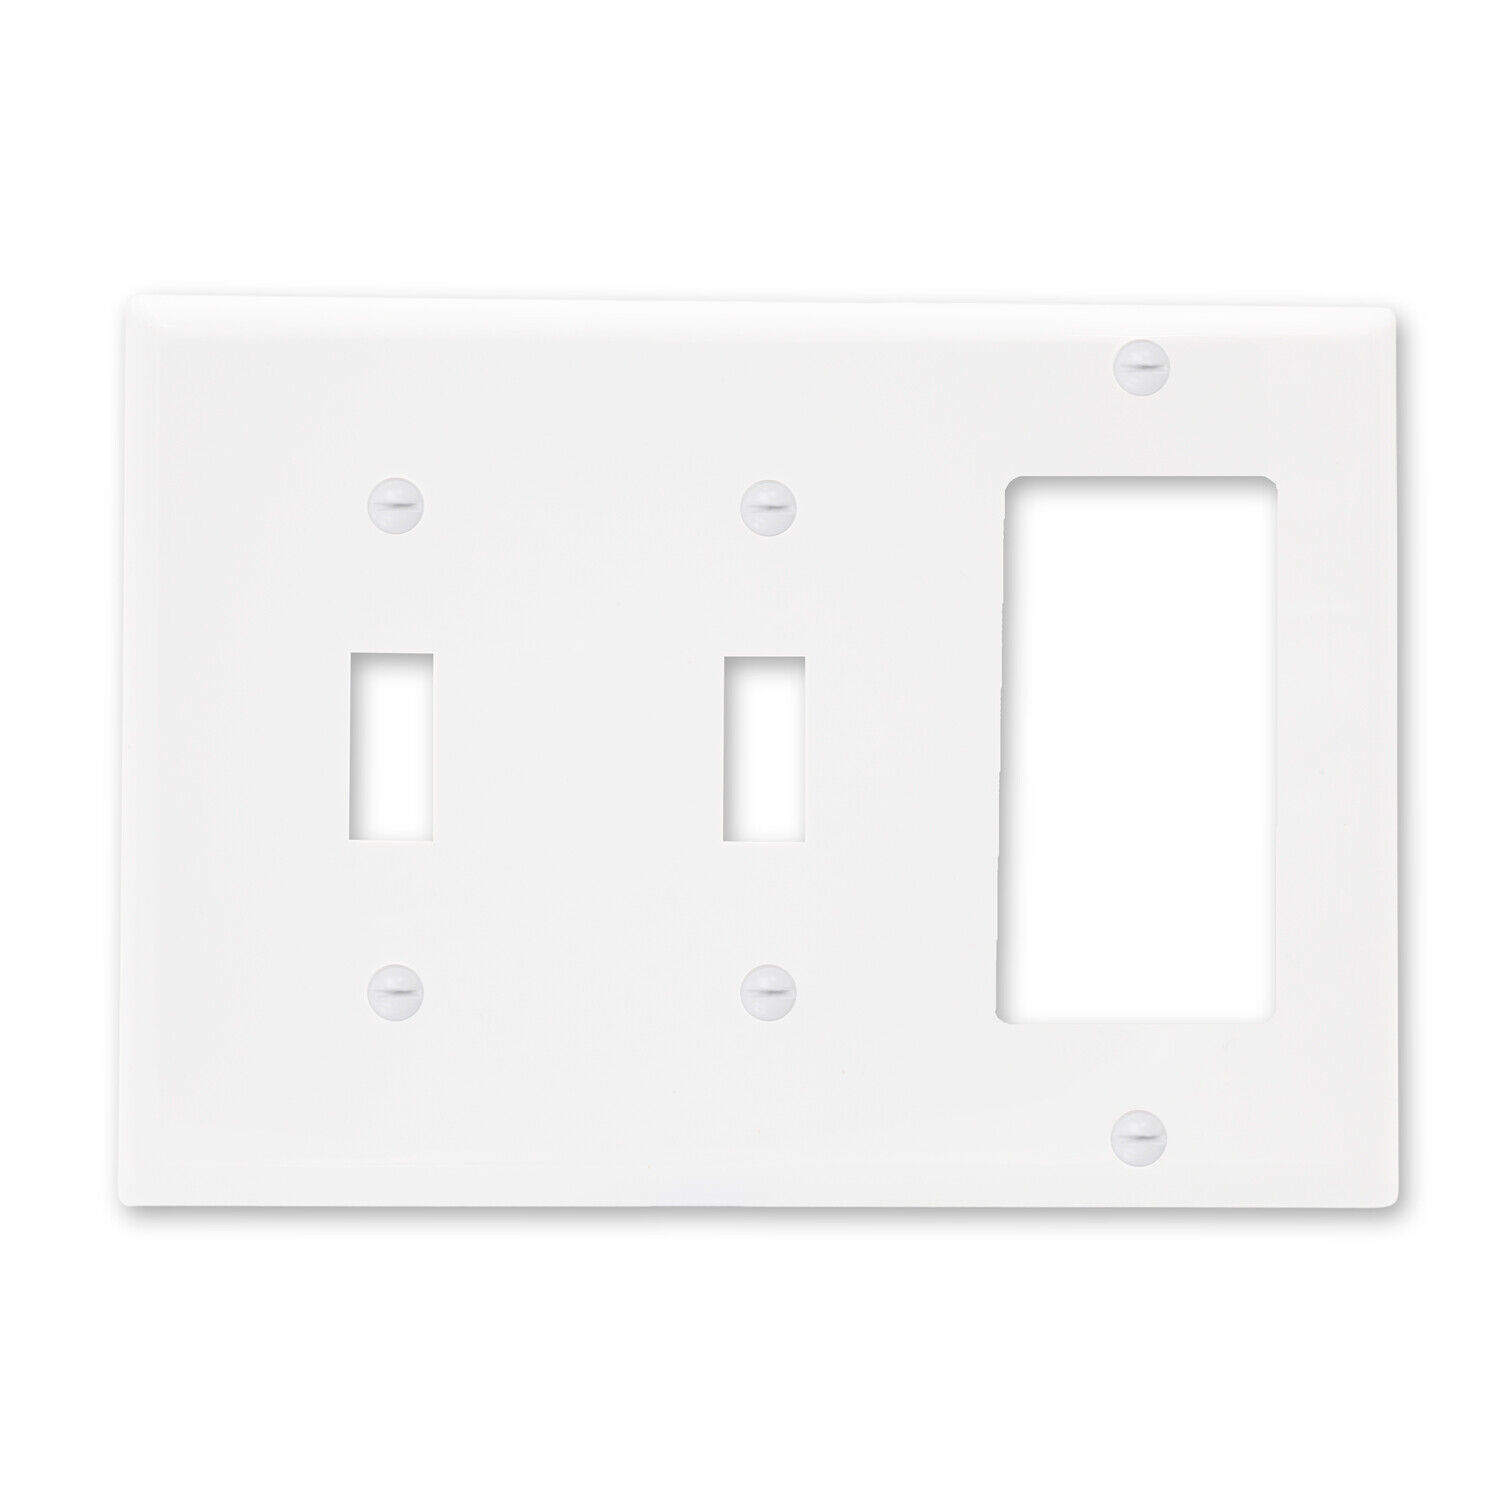 Standard Double Switch Plate Id 1038242 For Sale Online Ebay